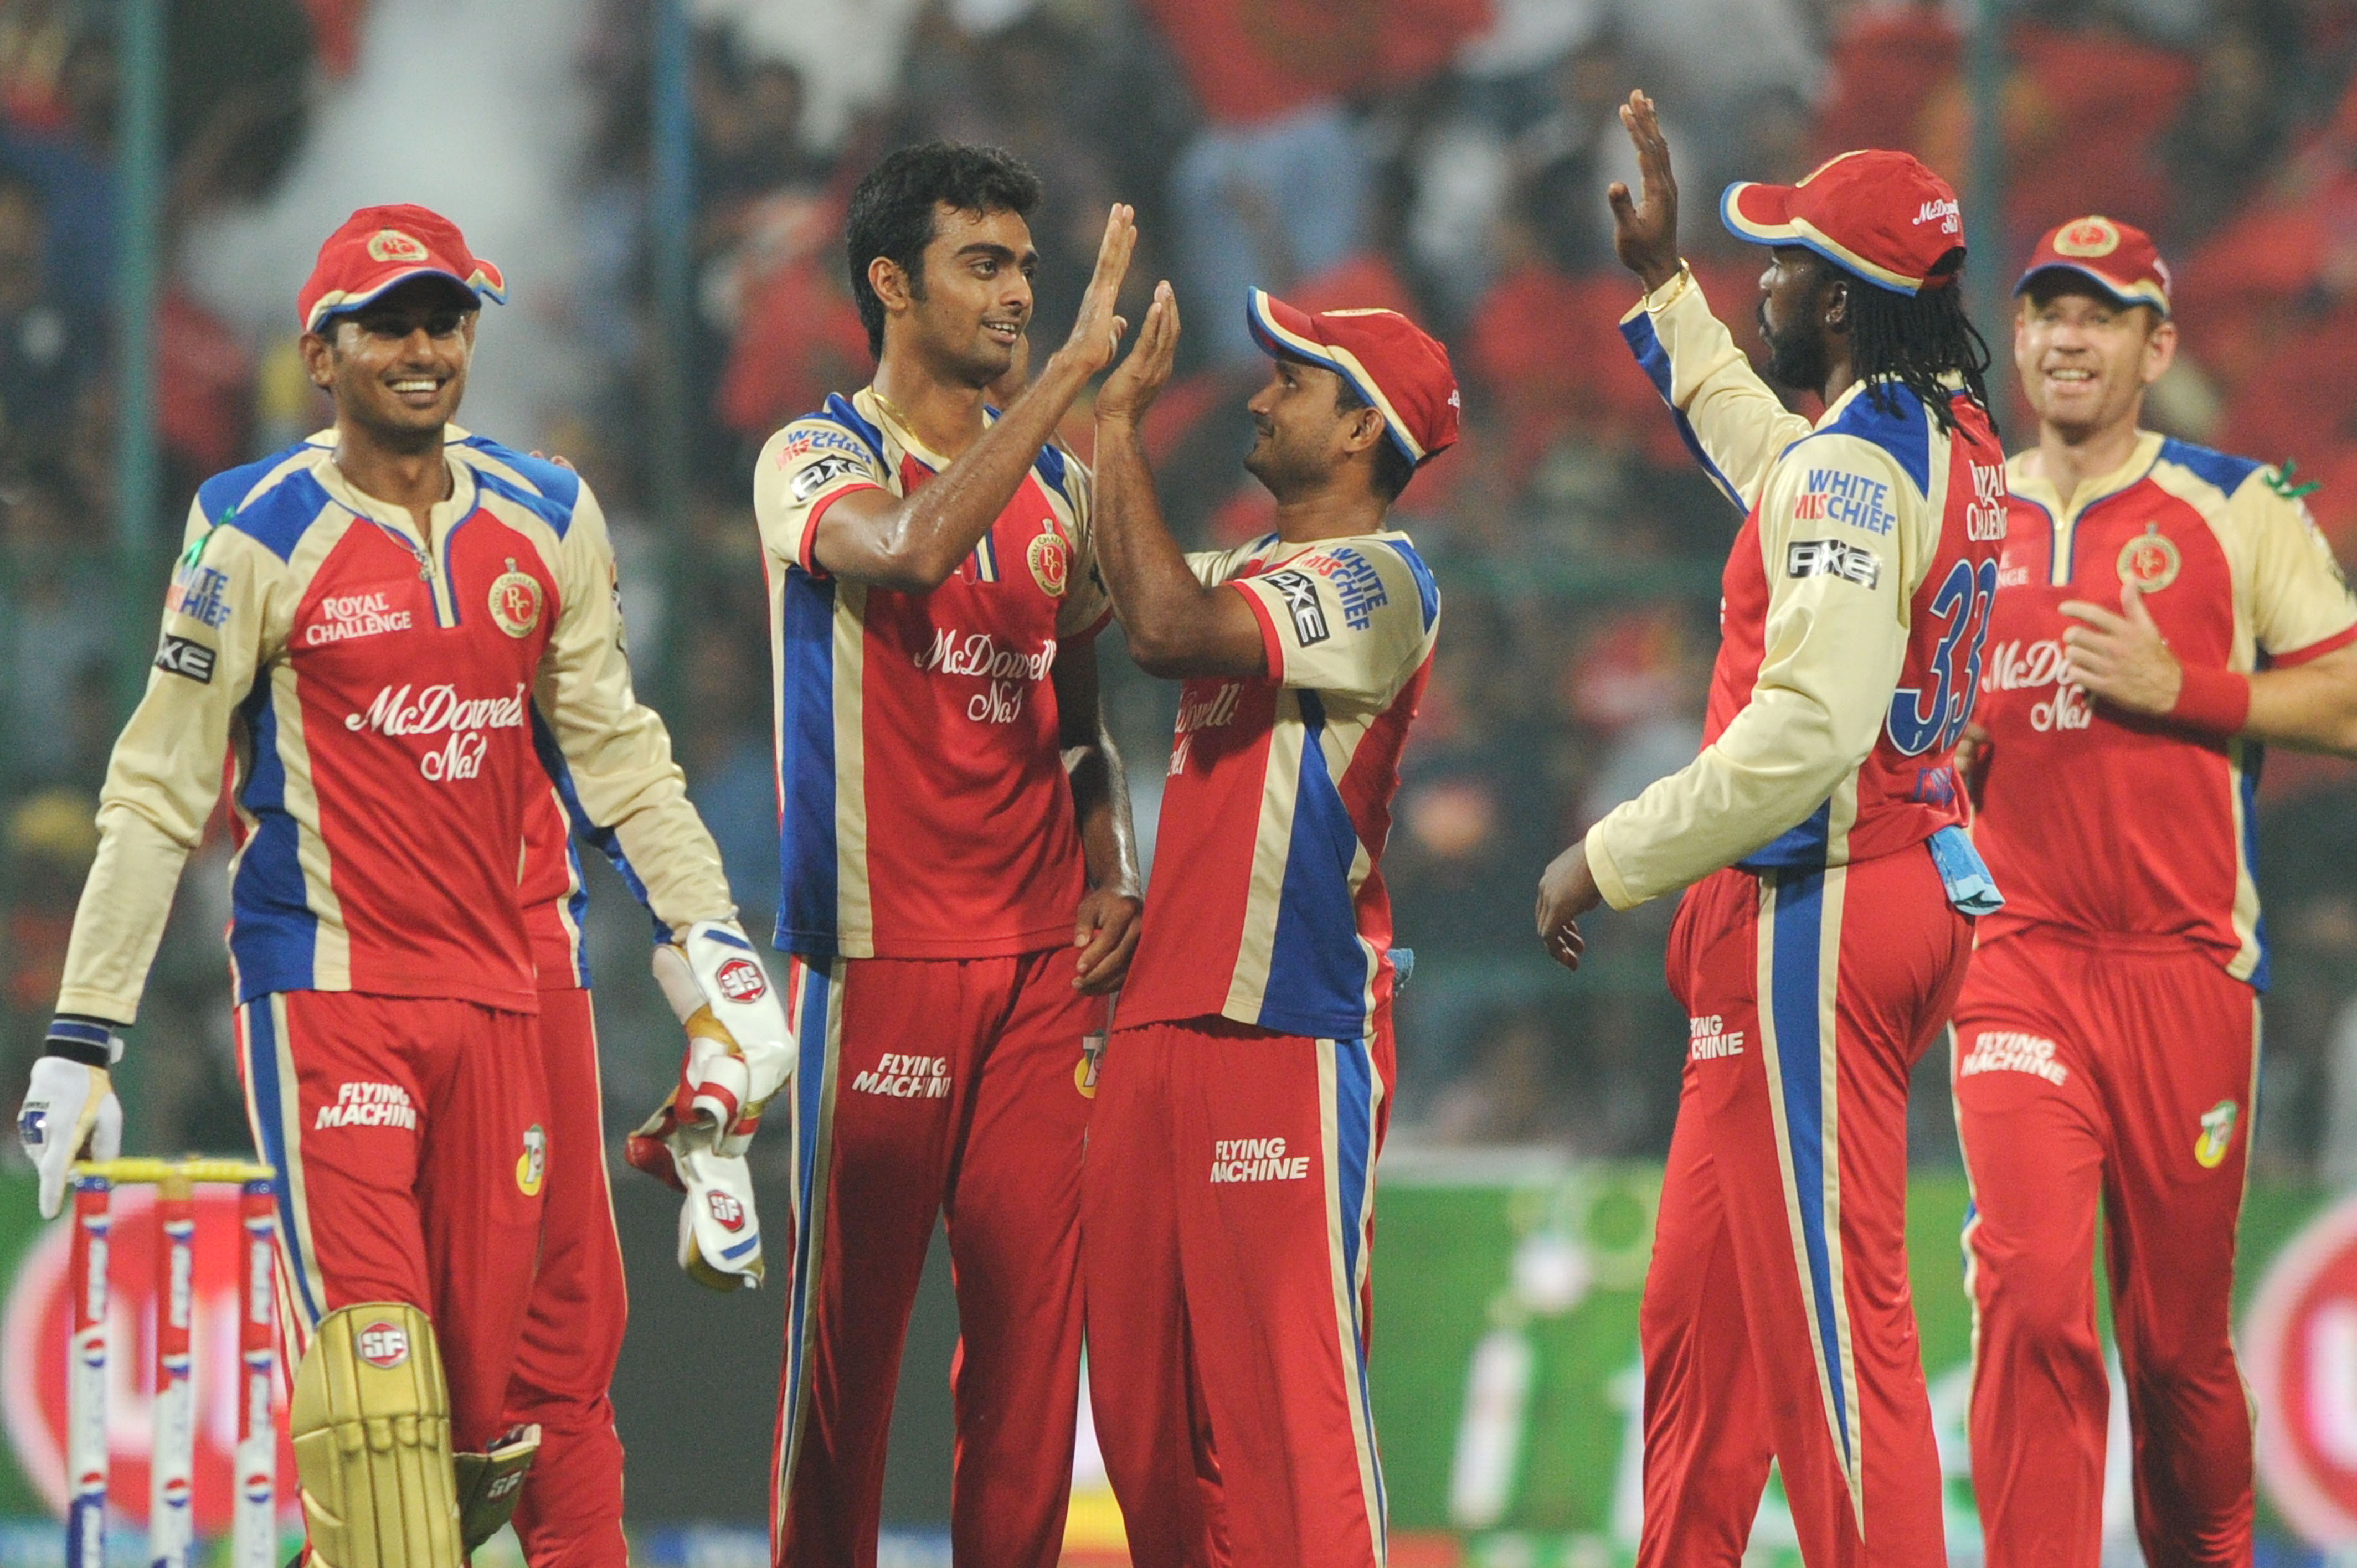 RCB players celebrate fall of wicket during the match between Delhi Daredevils and Royal Challengers Bangalore at M Chinnaswamy Stadium, Bangalore on April 16, 2013. (Photo: IANS)